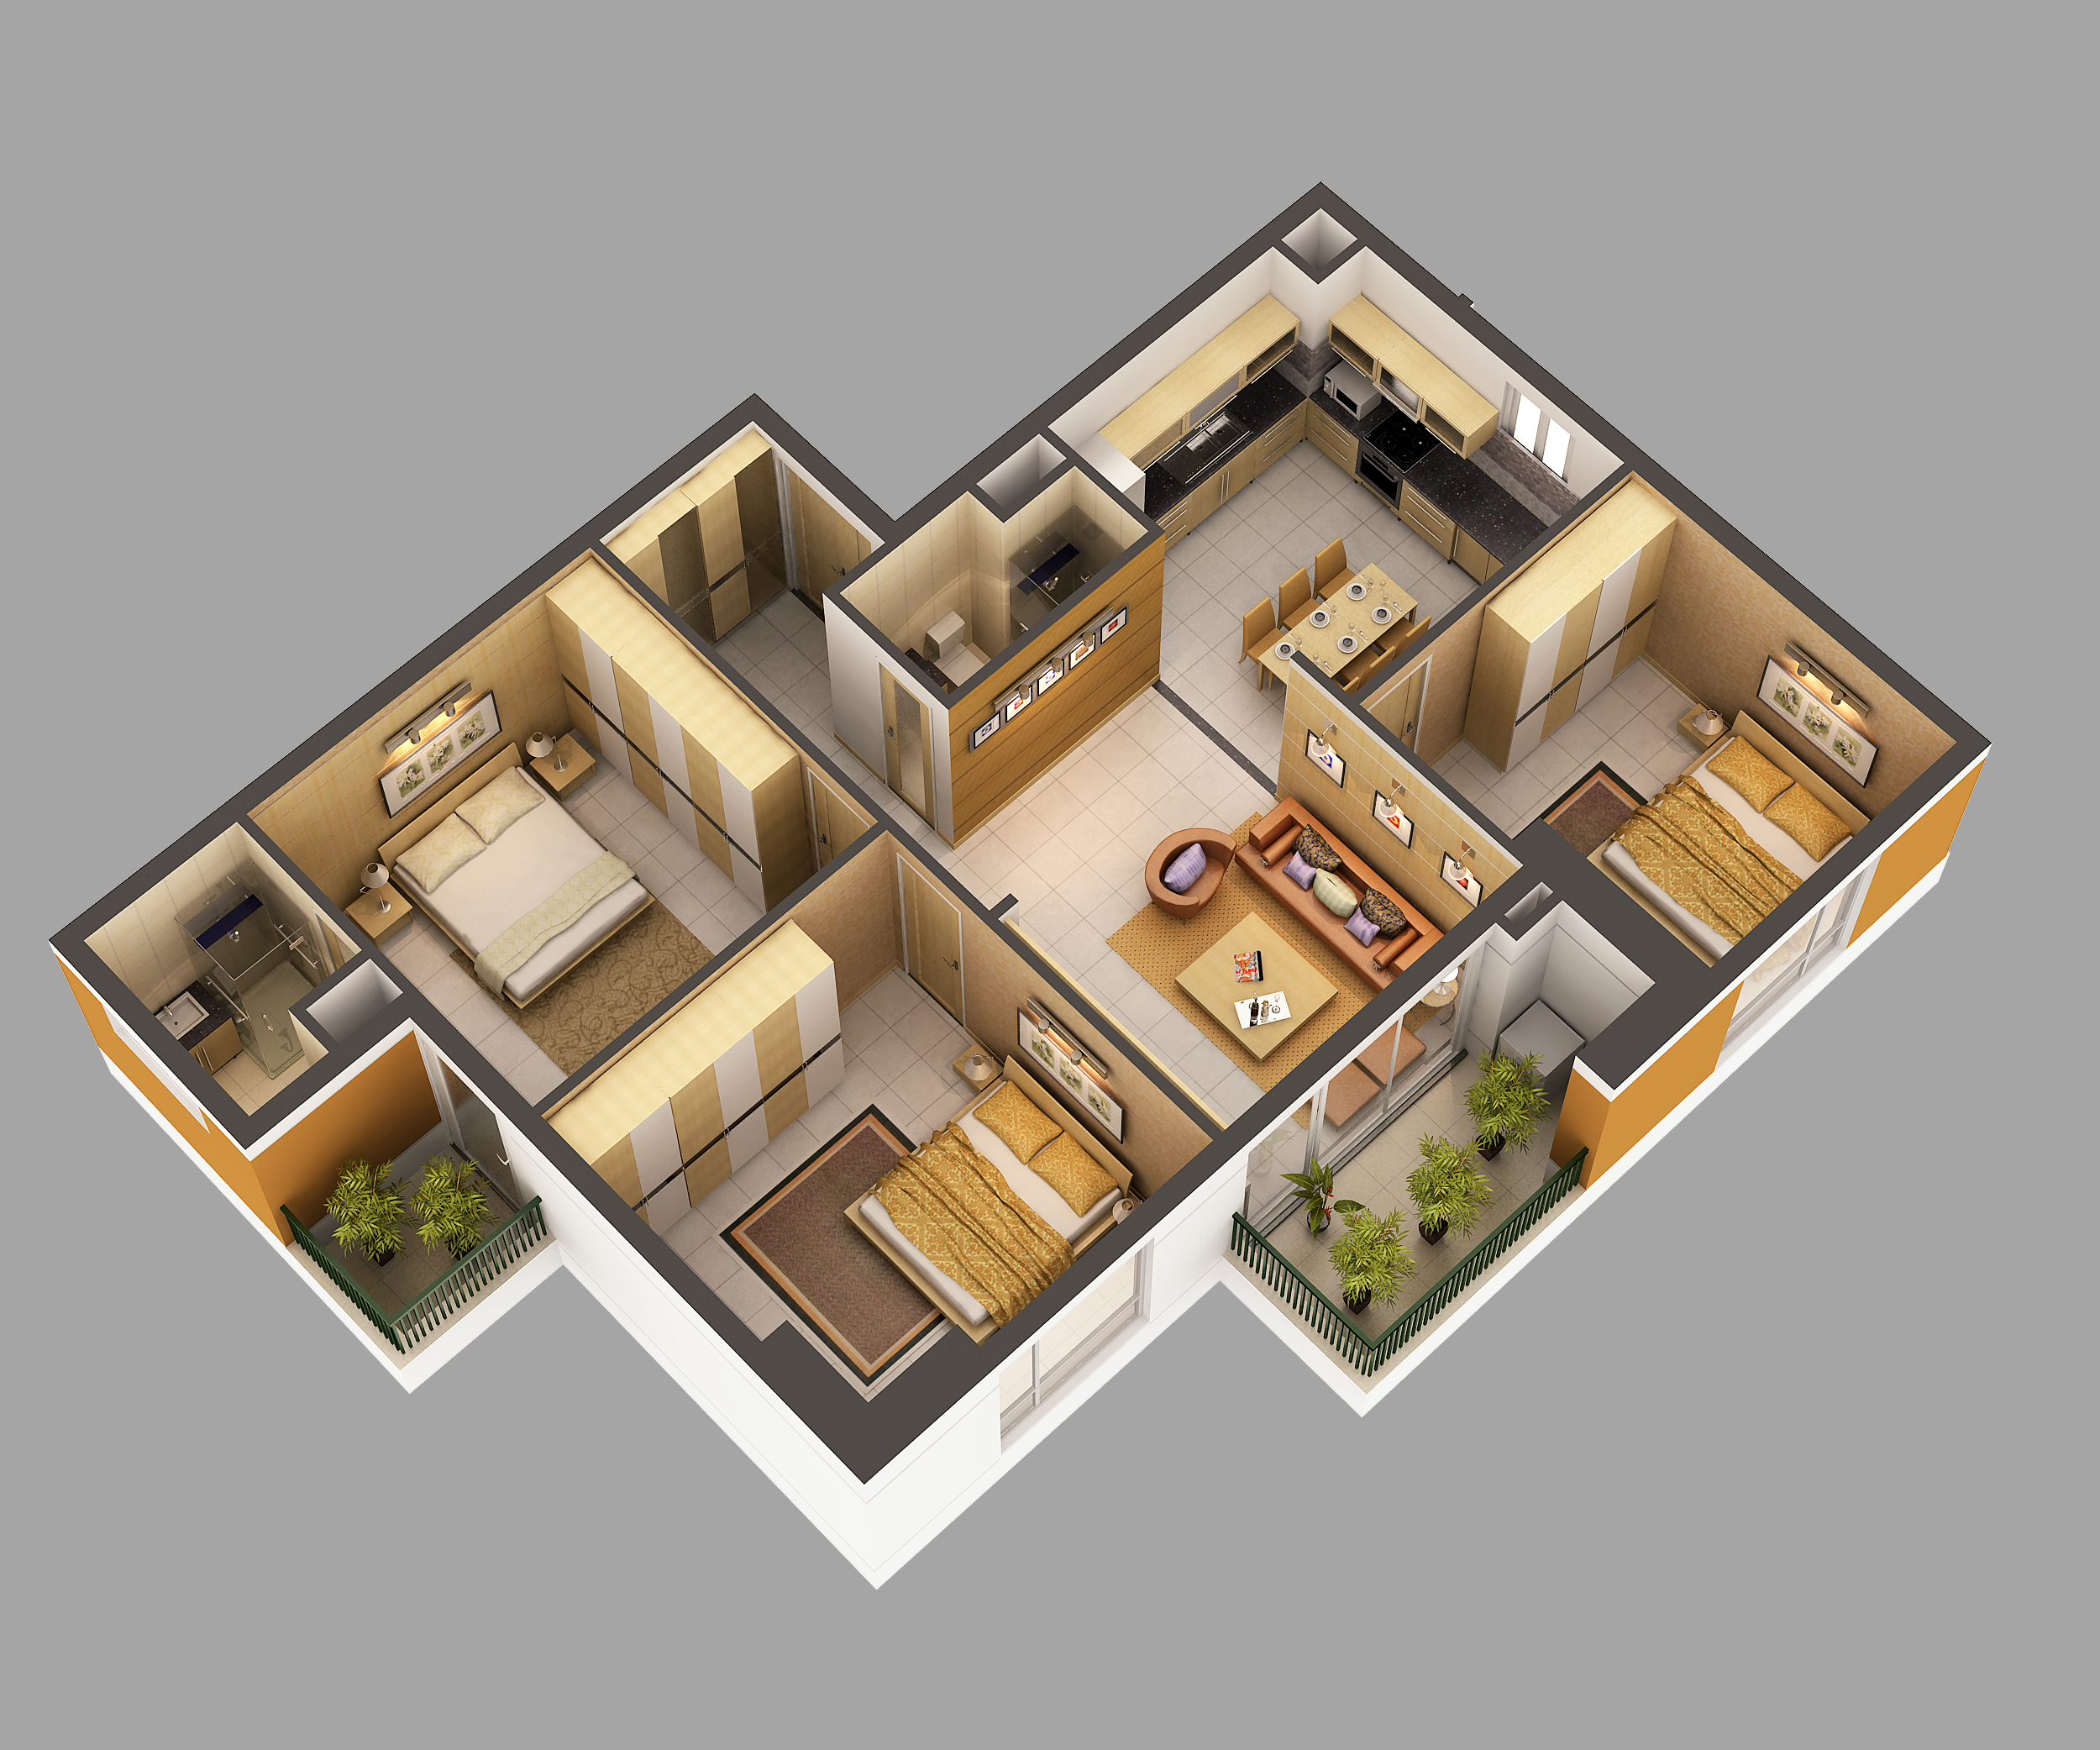 3d model home interior fully furnished 3d model max 3d model house design